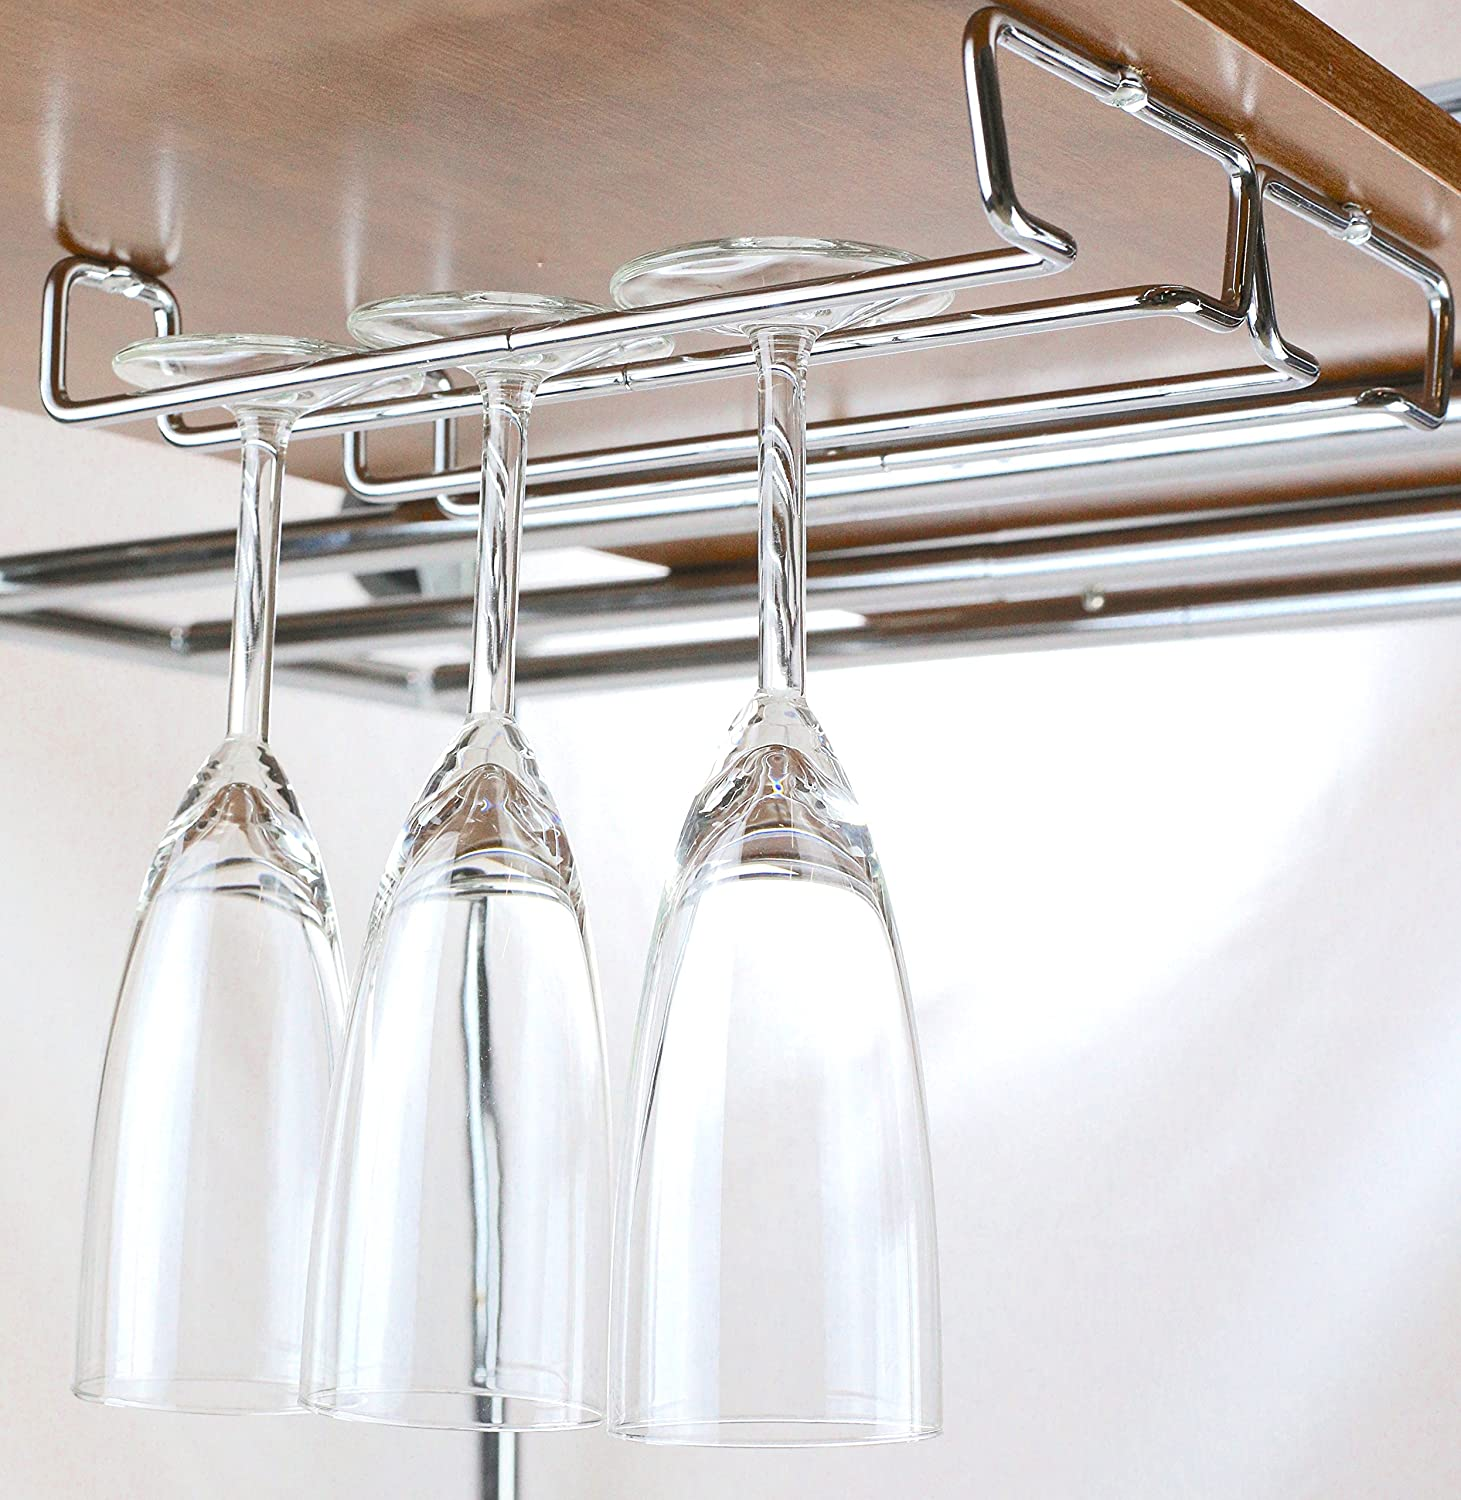 under cabinet wine glass rack. Amazon.com: DecoBros Under Cabinet Wine Glass Stemware Rack Holder, Chrome: Kitchen \u0026 Dining